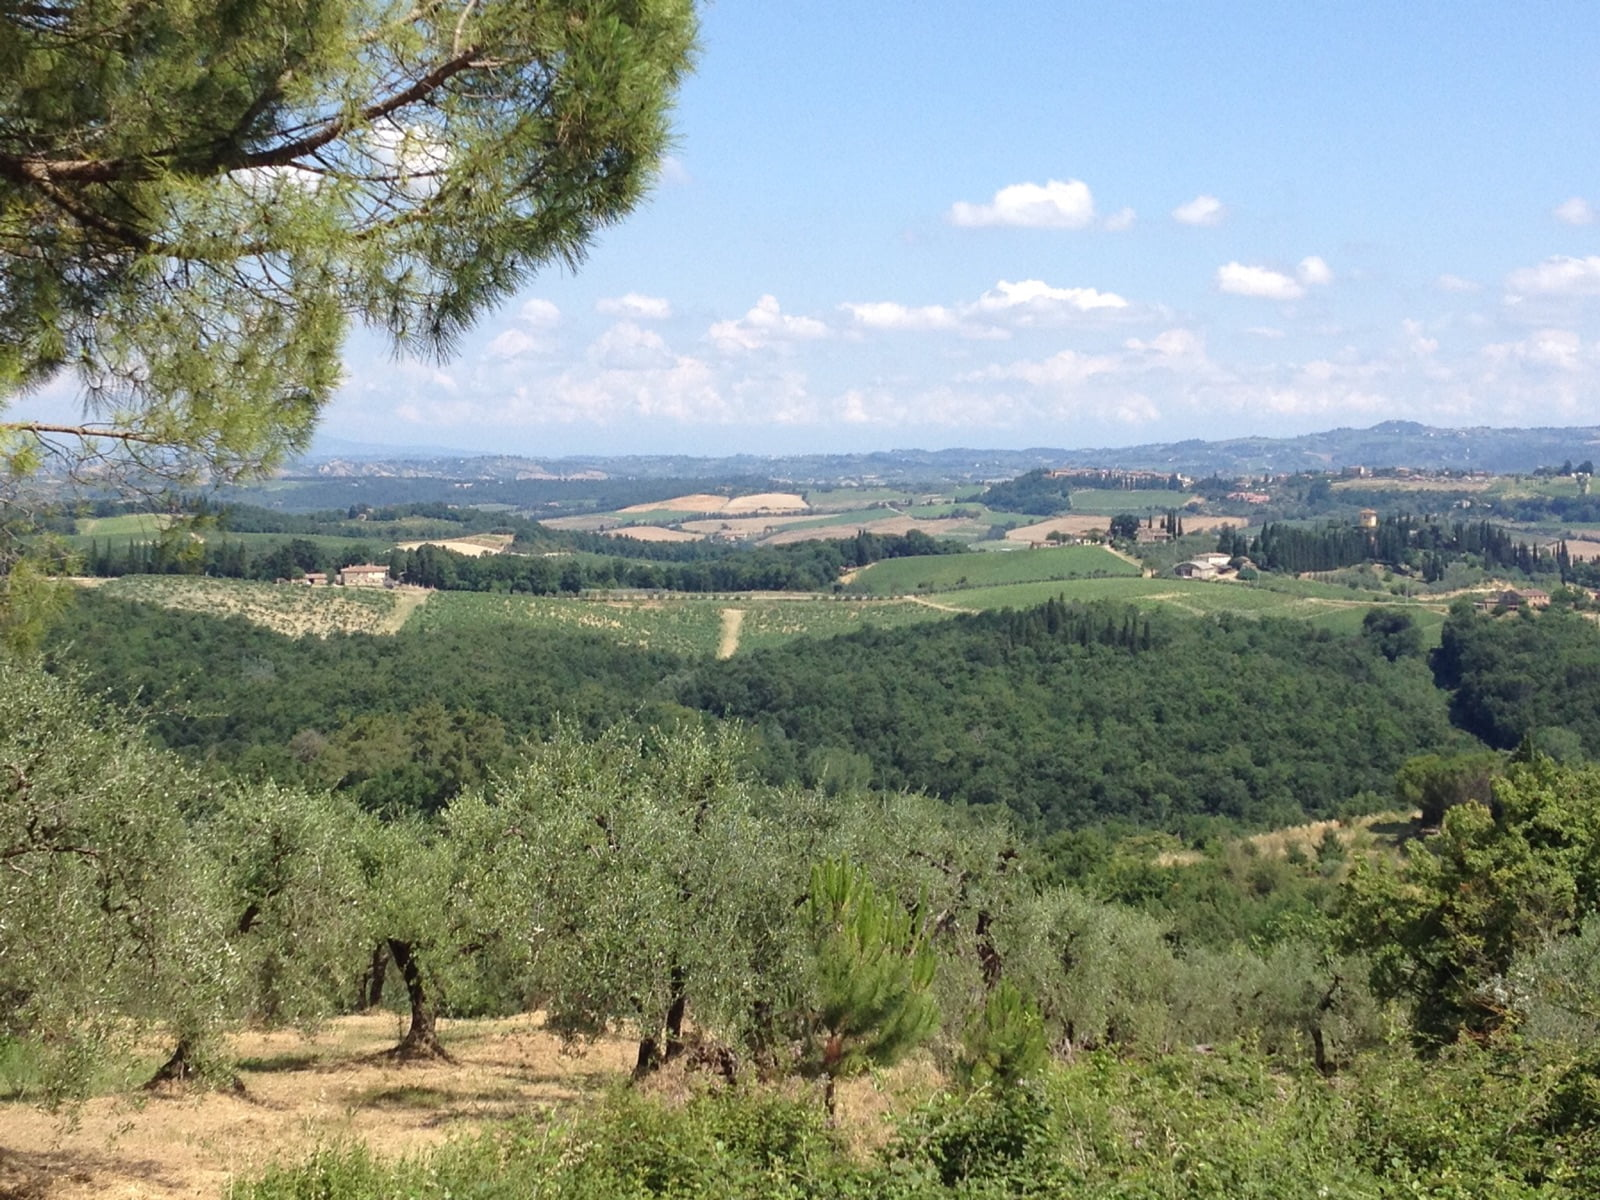 Olive trees, vineyards, hilltowns and forest in Tuscany